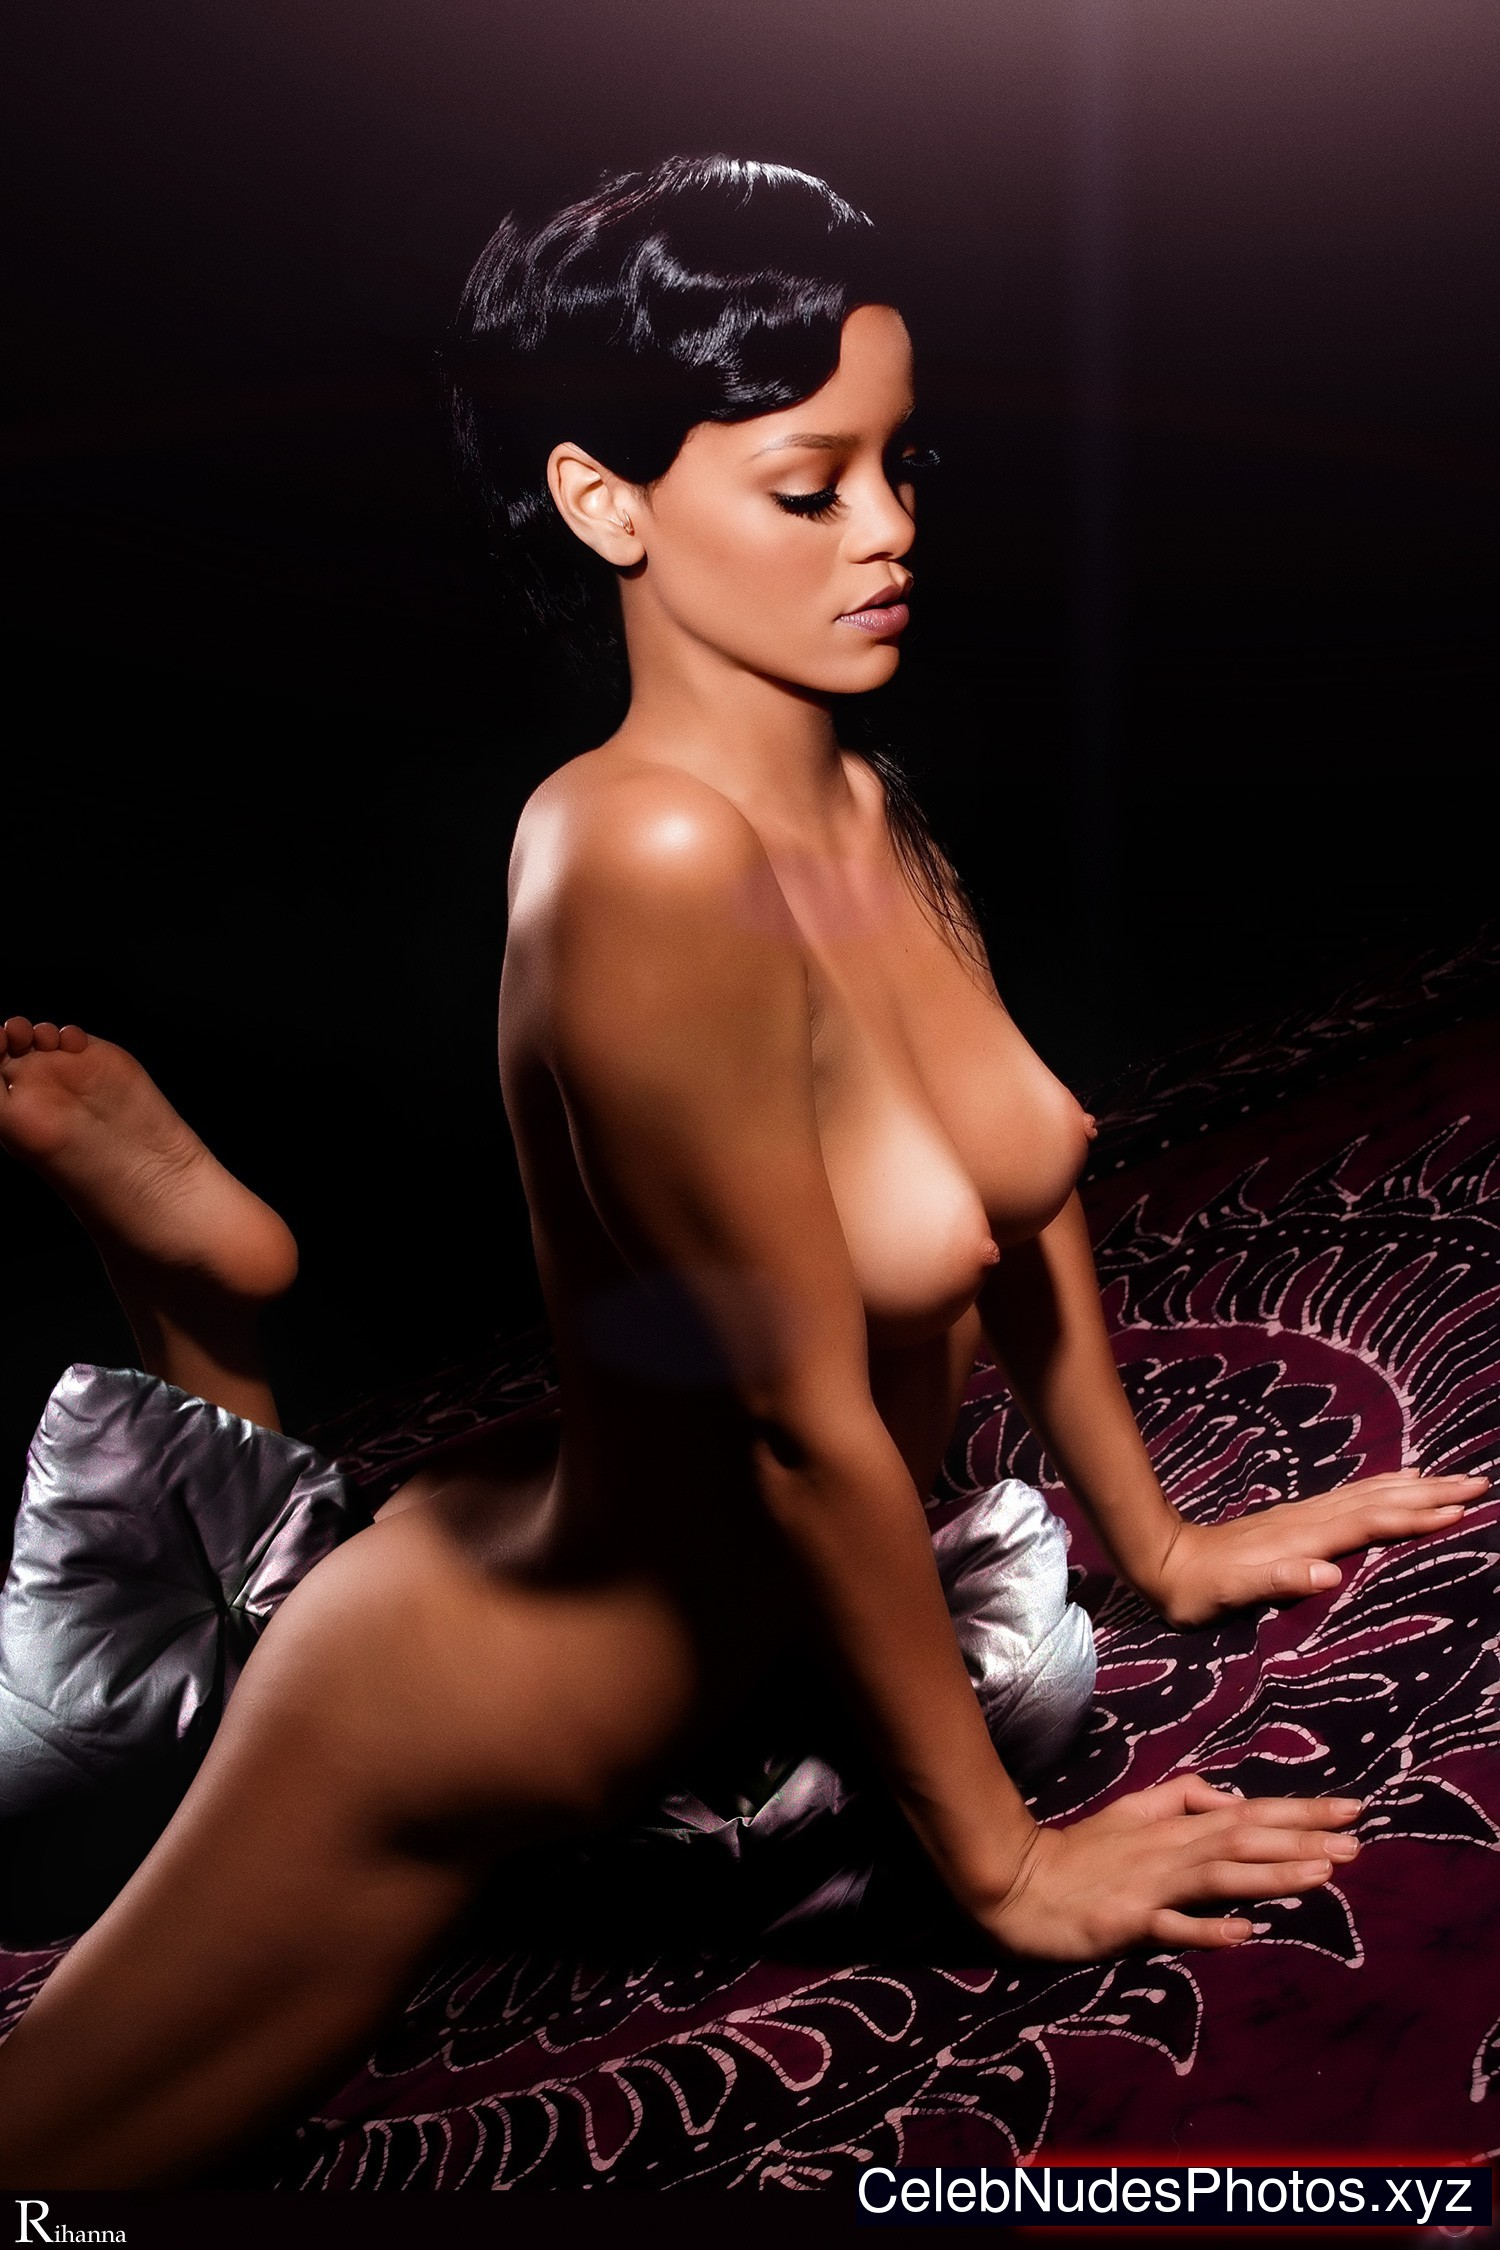 Happens. Rihanna nudes apologise, but